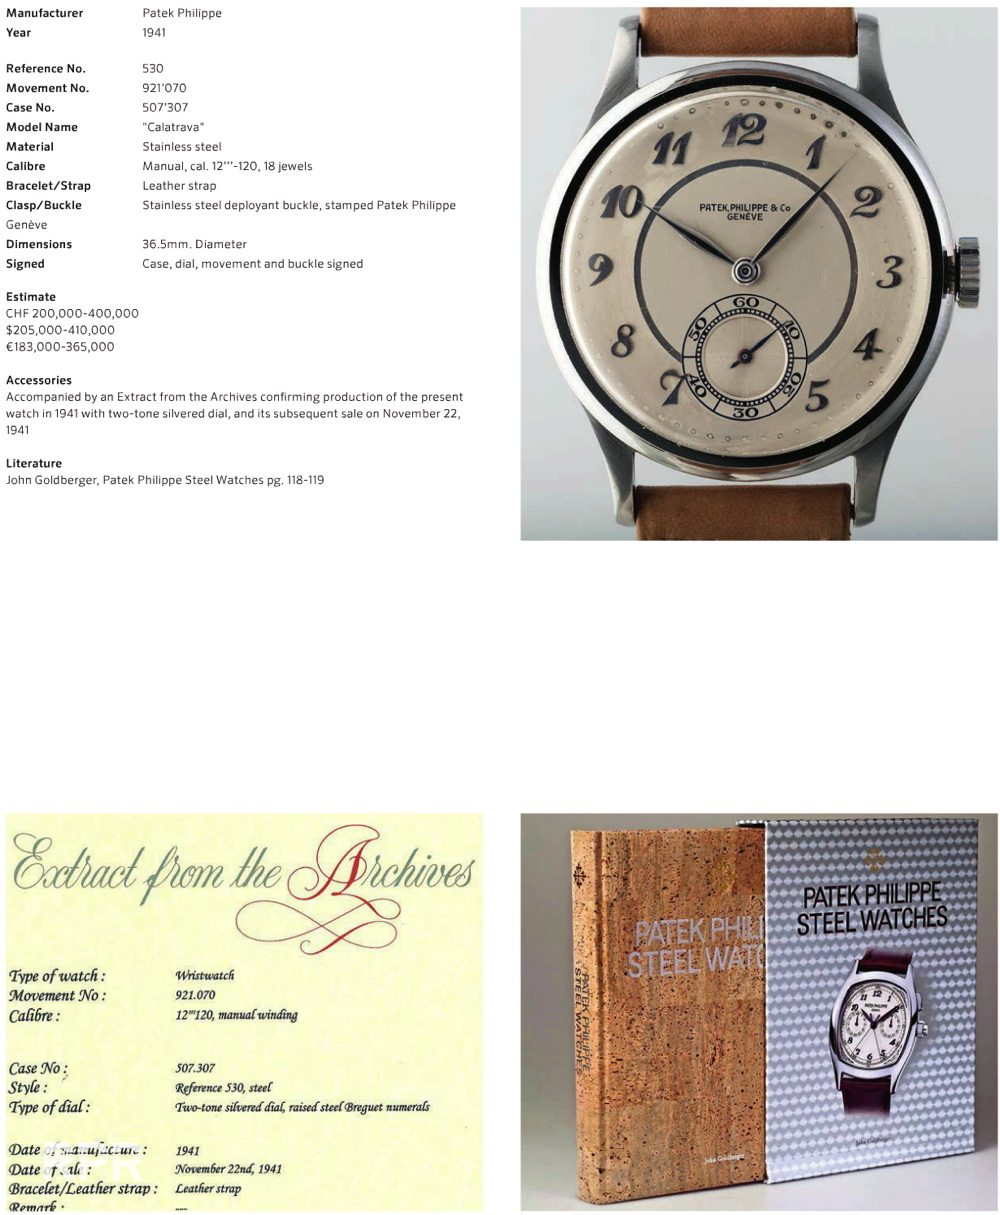 RPR_Rolex_geneva_auction_2015_17